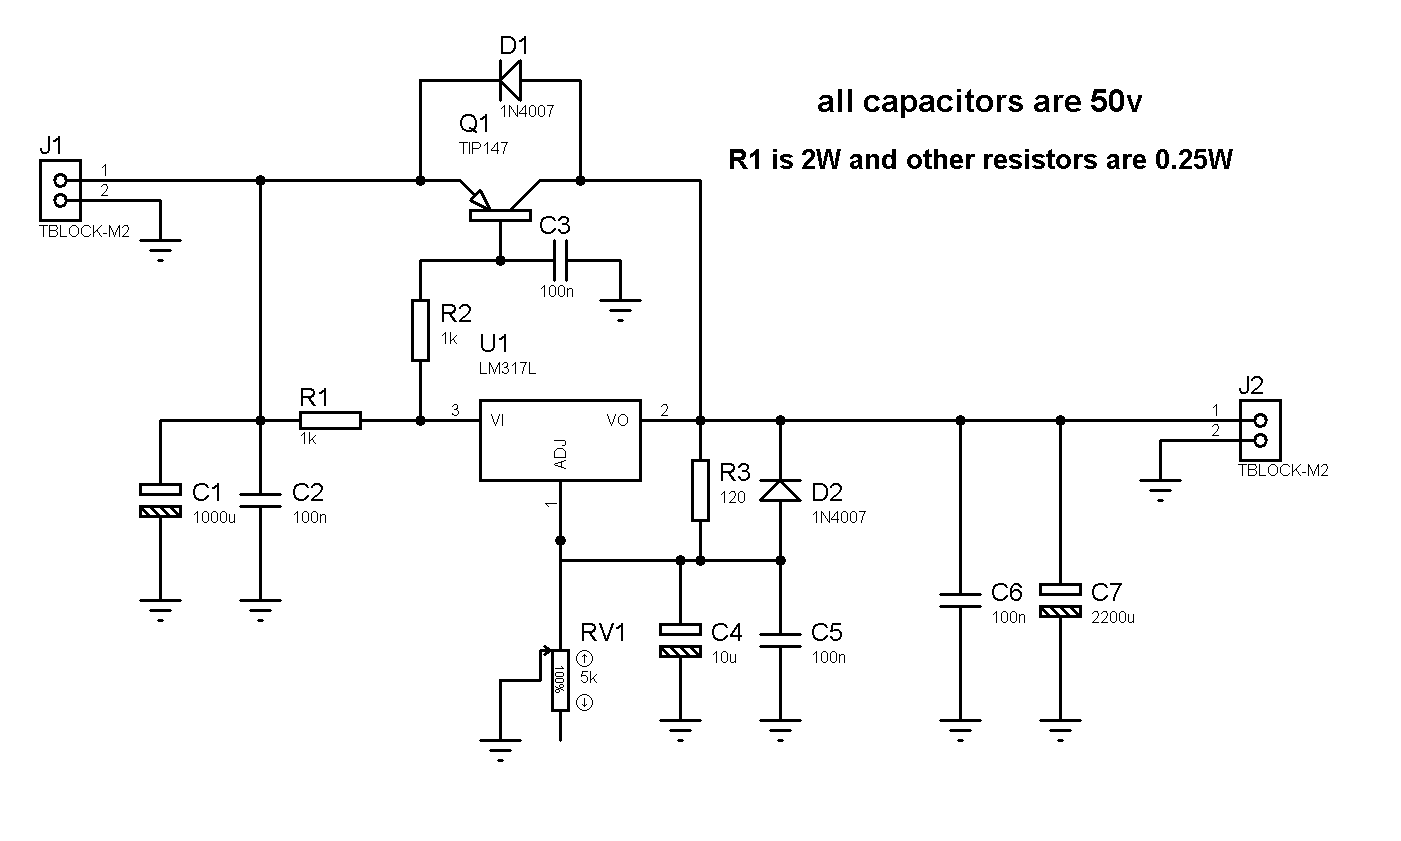 lm338 lm350 voltage regulator schematic with protection diodes